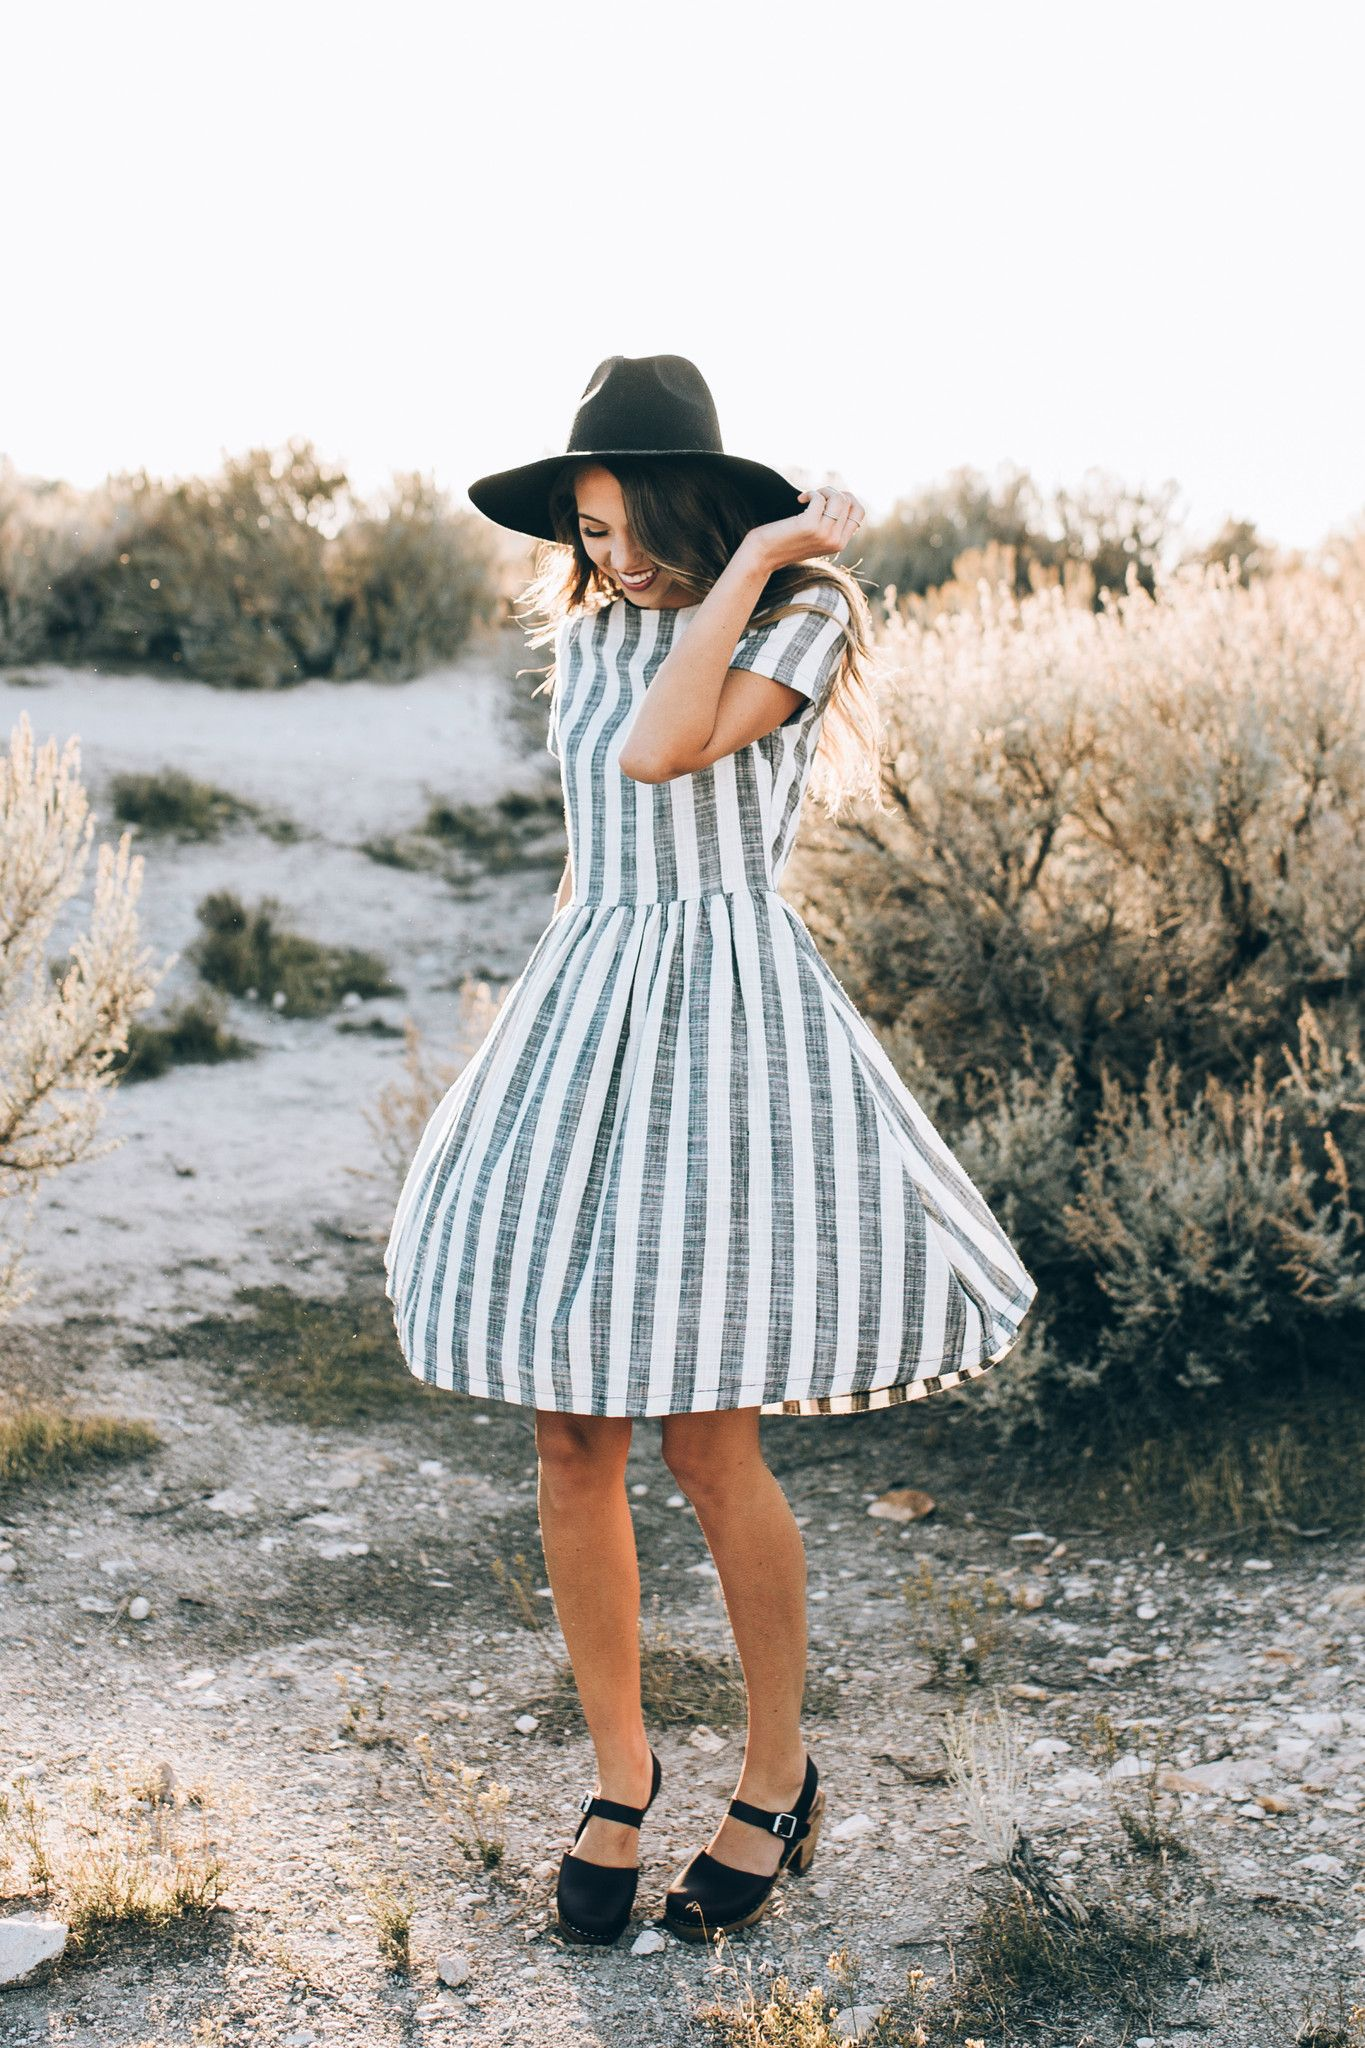 The Striped Linen Party Dress   Linens, Bald hairstyles and Cotton